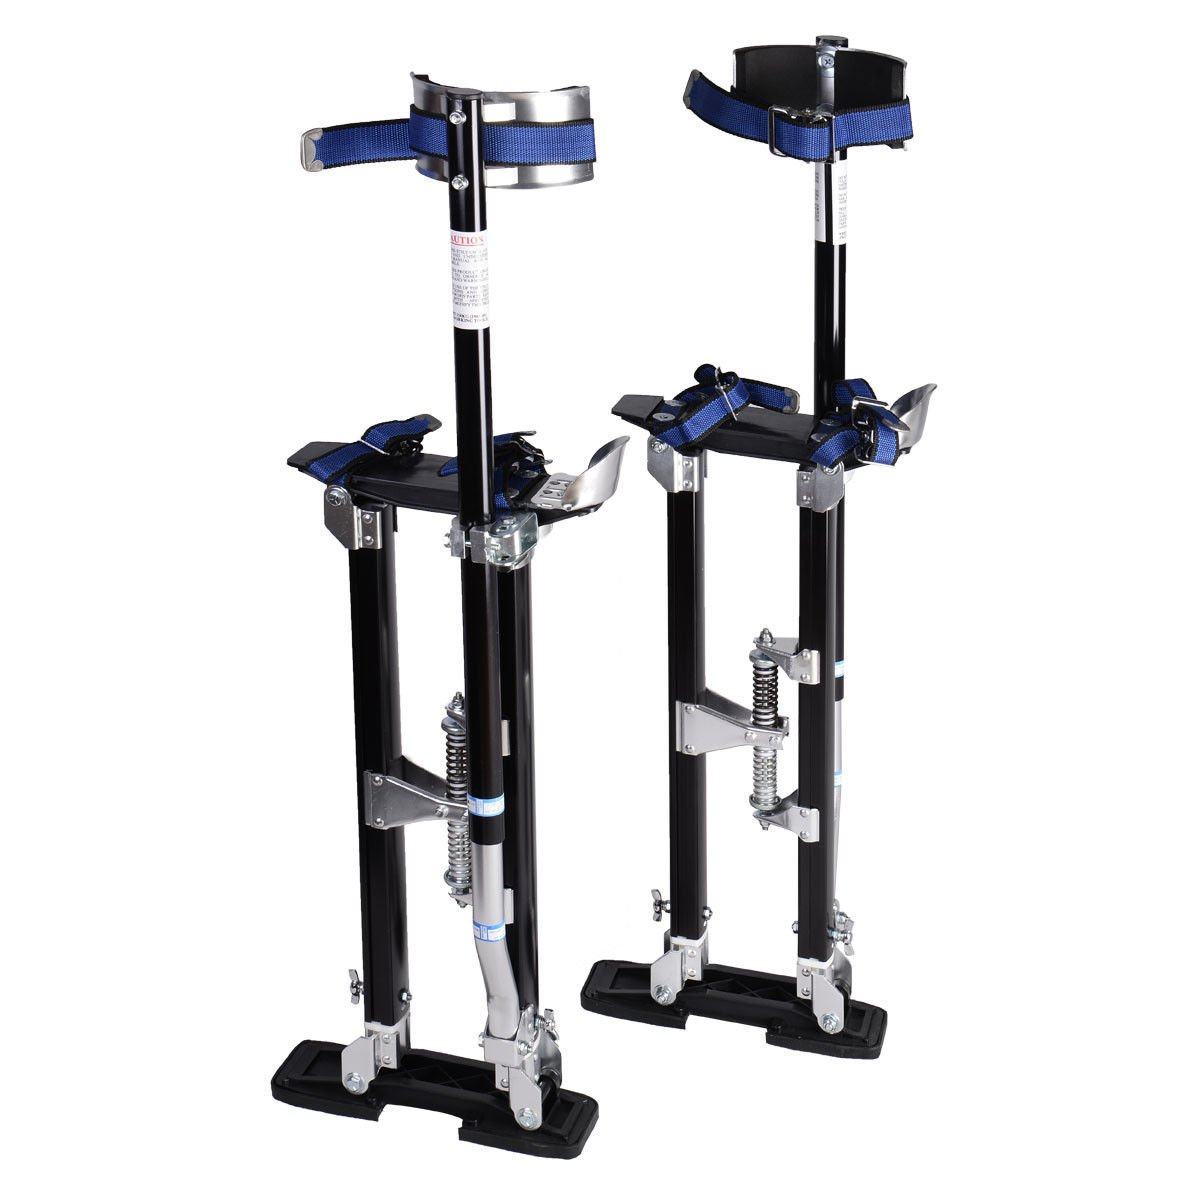 24-40 Inch Drywall Stilts Adjustable Aluminum Stilt Walking Painting Dura Taping Painter Tools by FrankMind (Image #3)